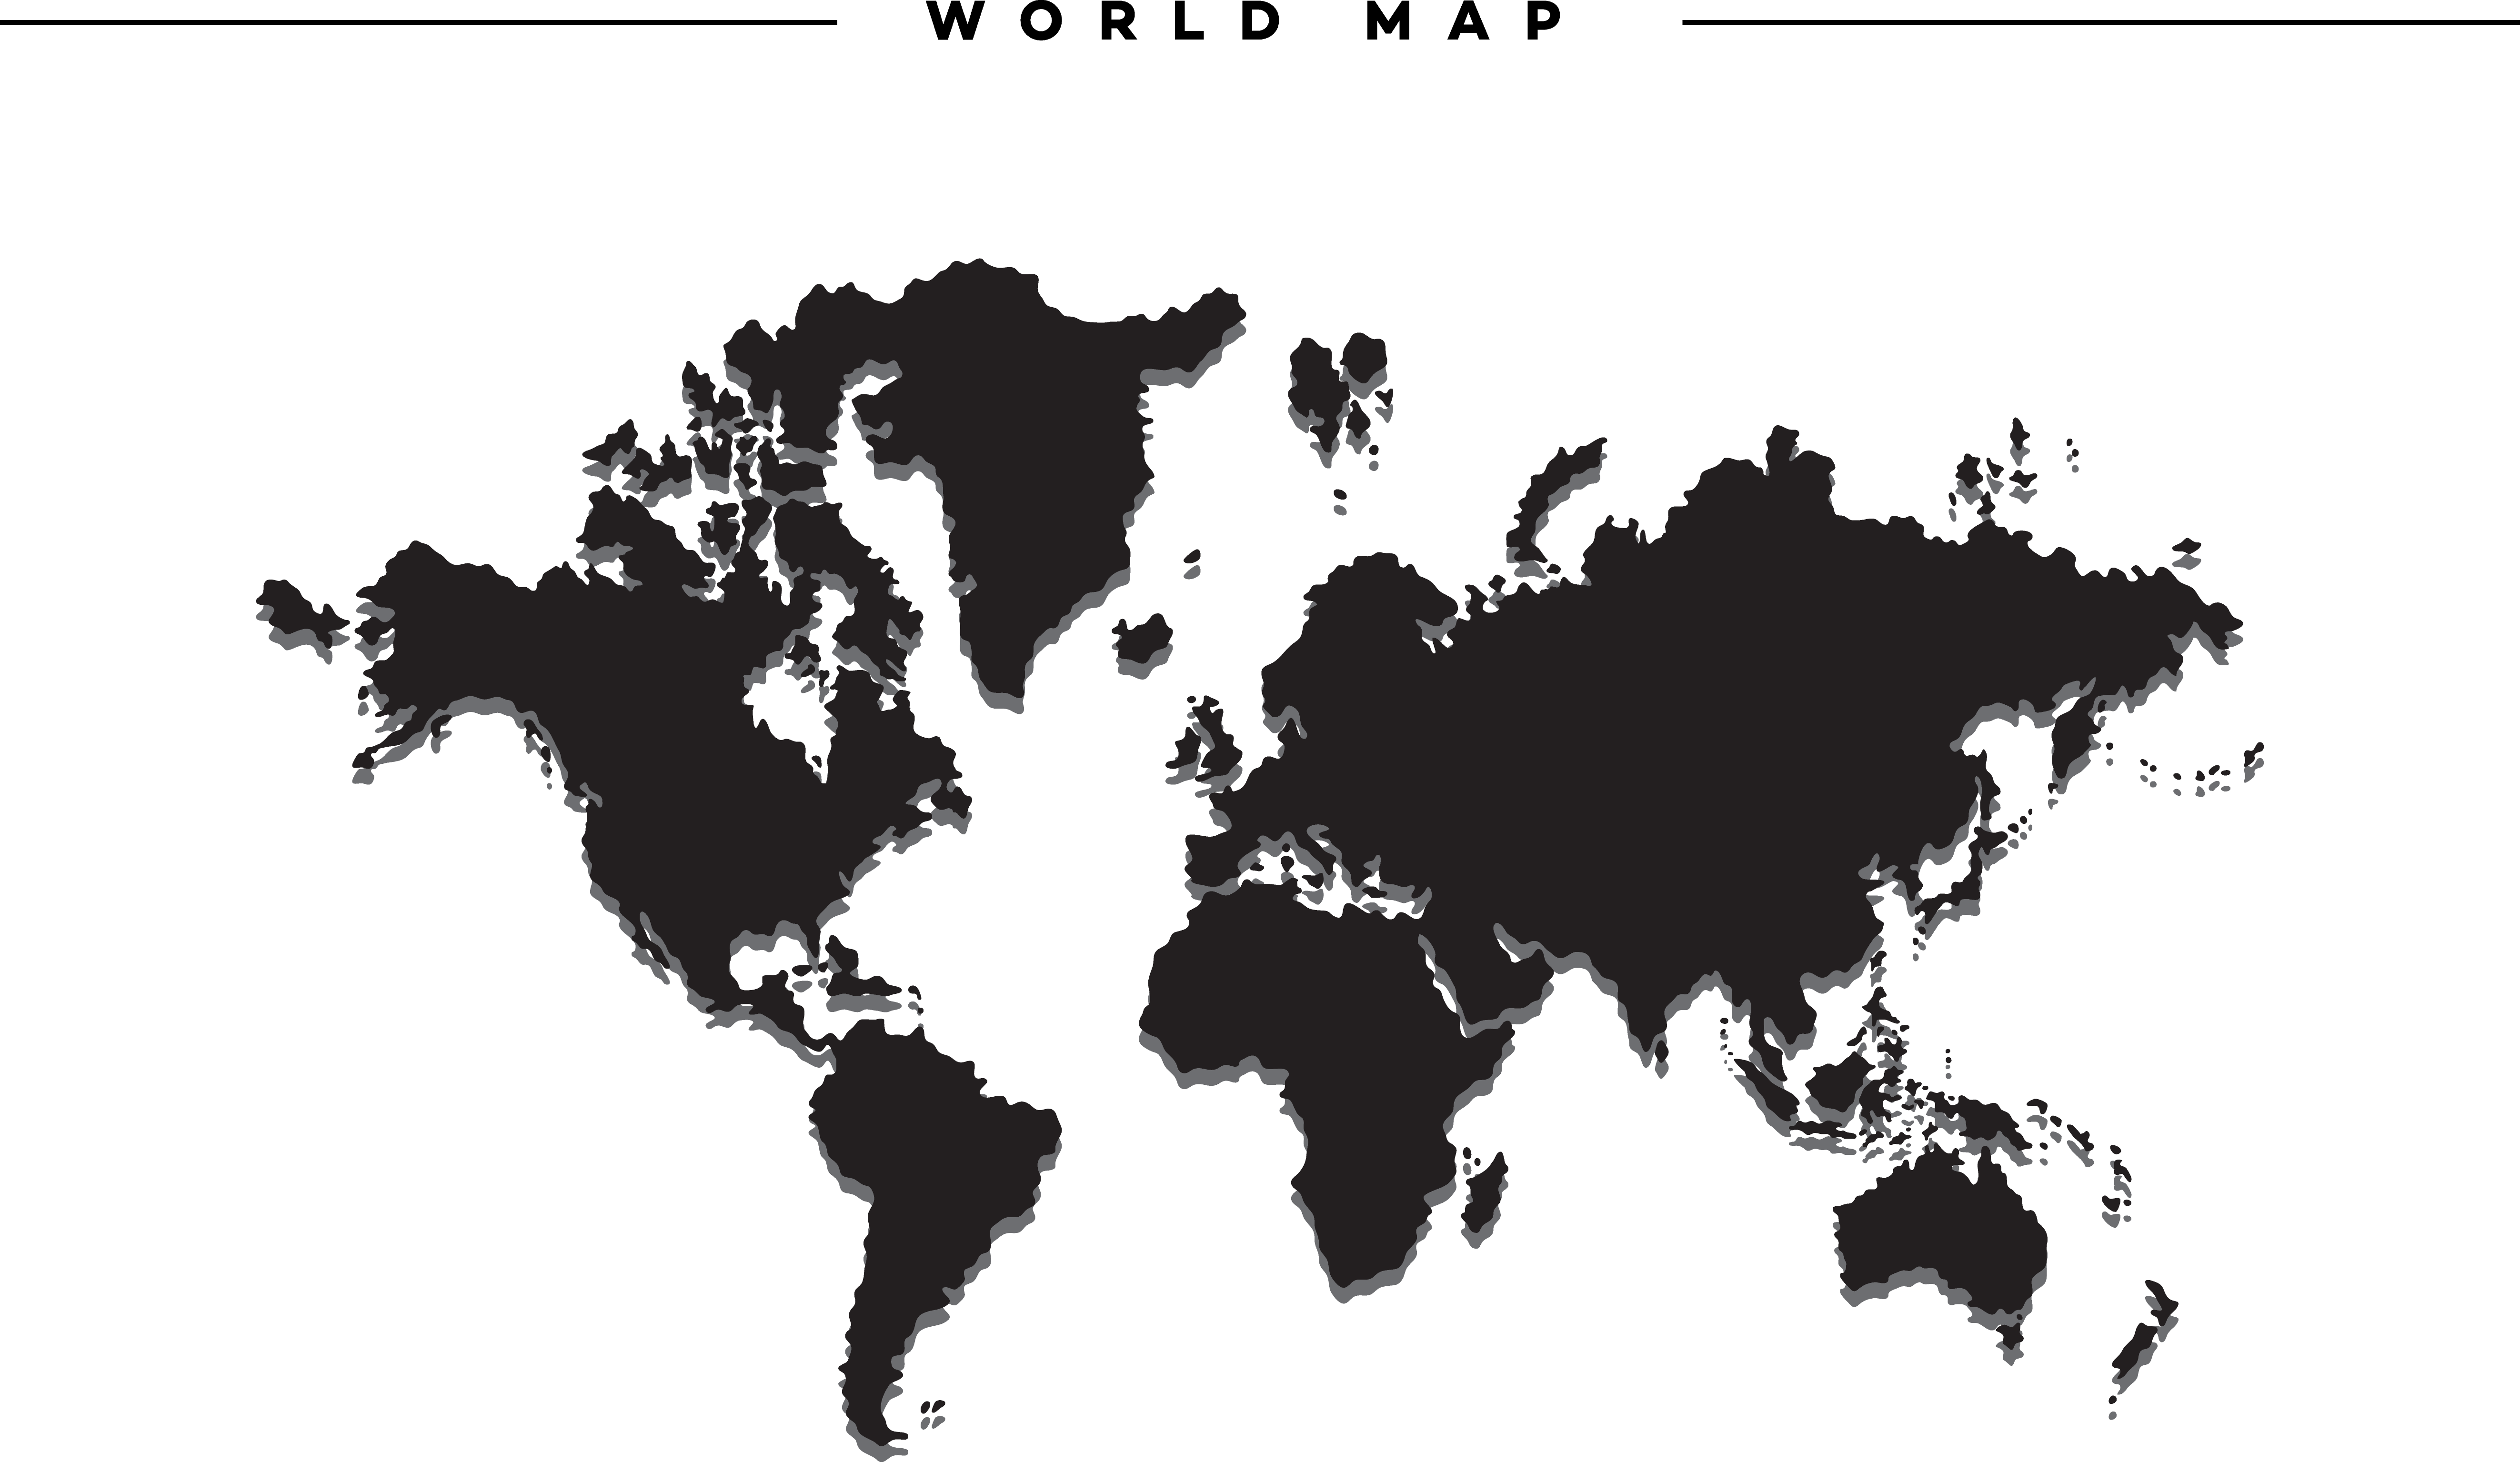 Map Of World Silhouette.World Map Silhouette Transparent Png Clipart Free Download Ya